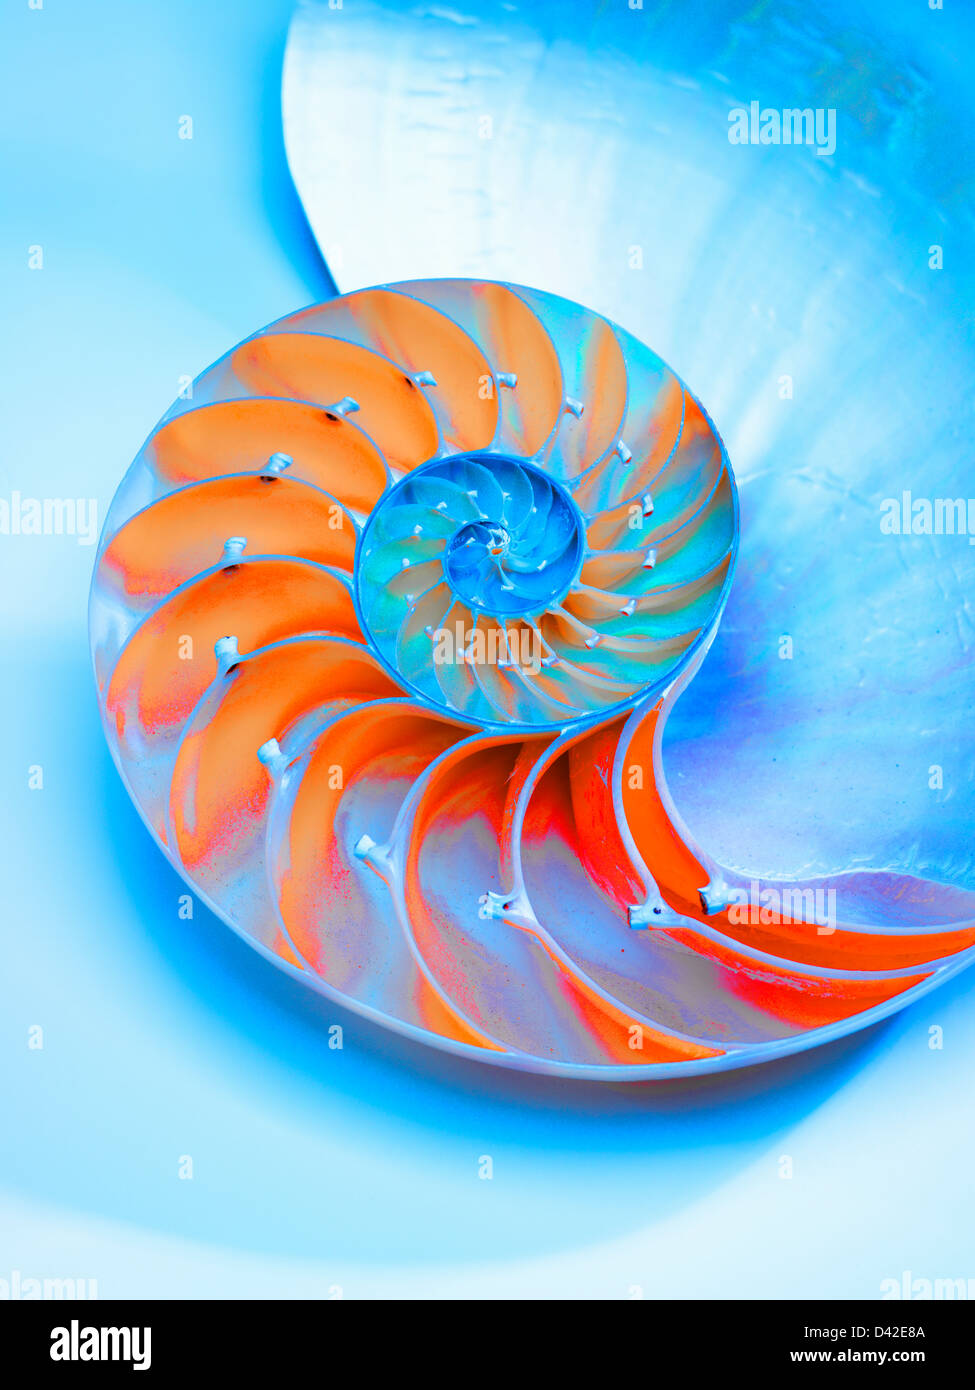 Nautilus Shell bisected in half showing the chambers,Nautilus Pompilus,Genus Nautilus - Stock Image